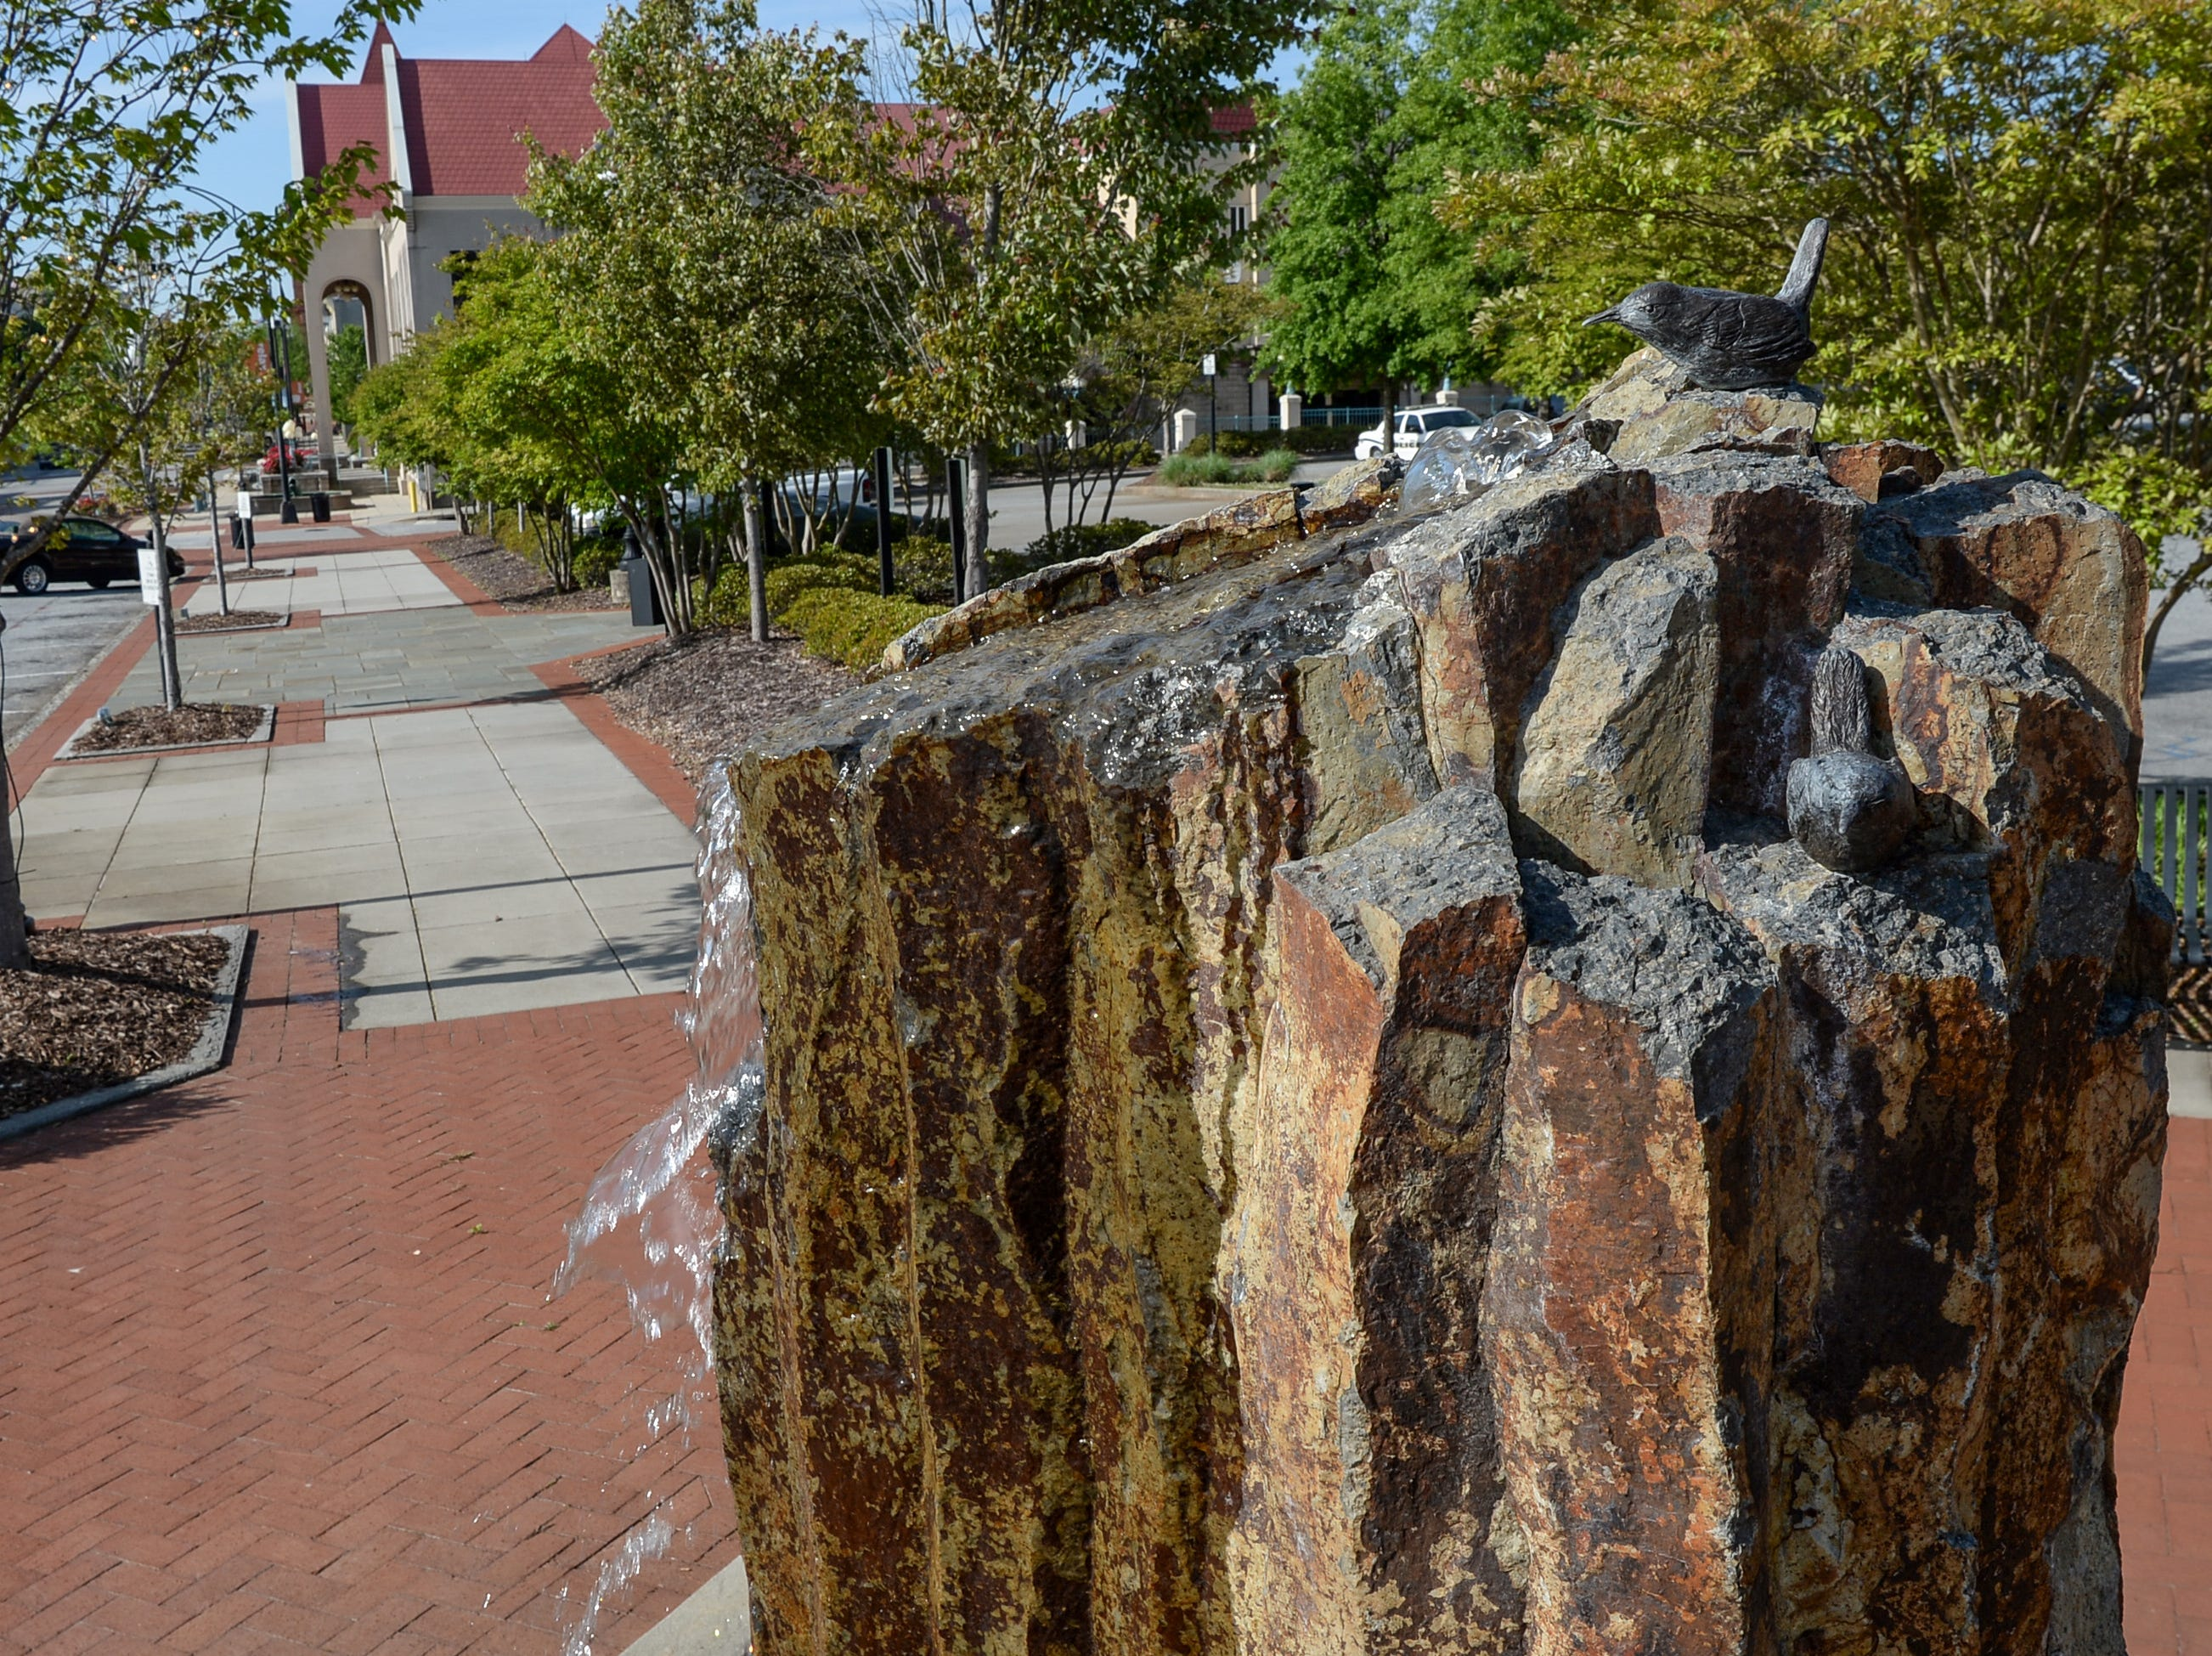 The Wren Fountain on South Main Street is a project that To Benefit Anderson group has completed since the first in 2007. The Foothills Community Foundation joined with the group in raising money for the projects.